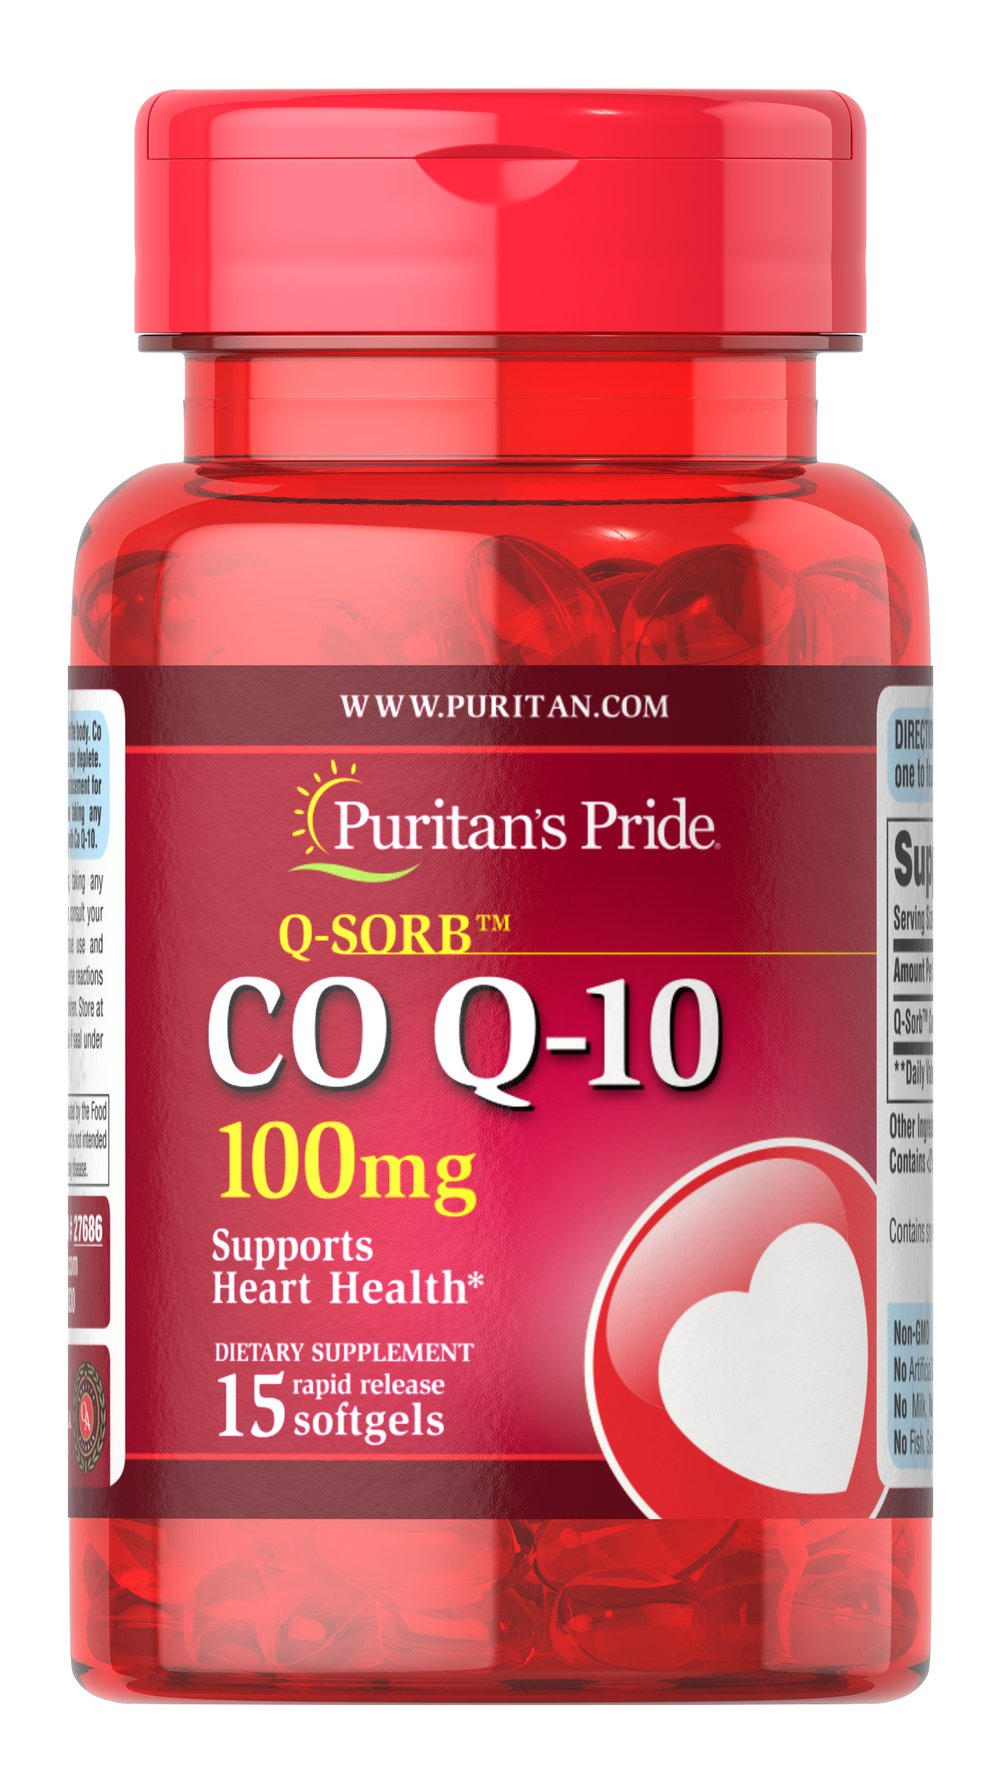 "Q-SORB™ Co Q-10 100 mg Made with a natural, highly bioavailable form of Co Q 10 — Q-Sorb.™Important for Statin medication users++ — taking Q-Sorb™ Co Q 10 can help replenish what Statin medications can deplete. Coenzyme Q-10 provides powerful antioxidant support.** Good oral health is linked to cardiovascular health; Coenzyme Q10 supports both!** Hermetically sealed in easy to swallow rapid-release softgels for superior absorption. <p style=""margin:0in;margin-bottom:.0001pt;"">&am"